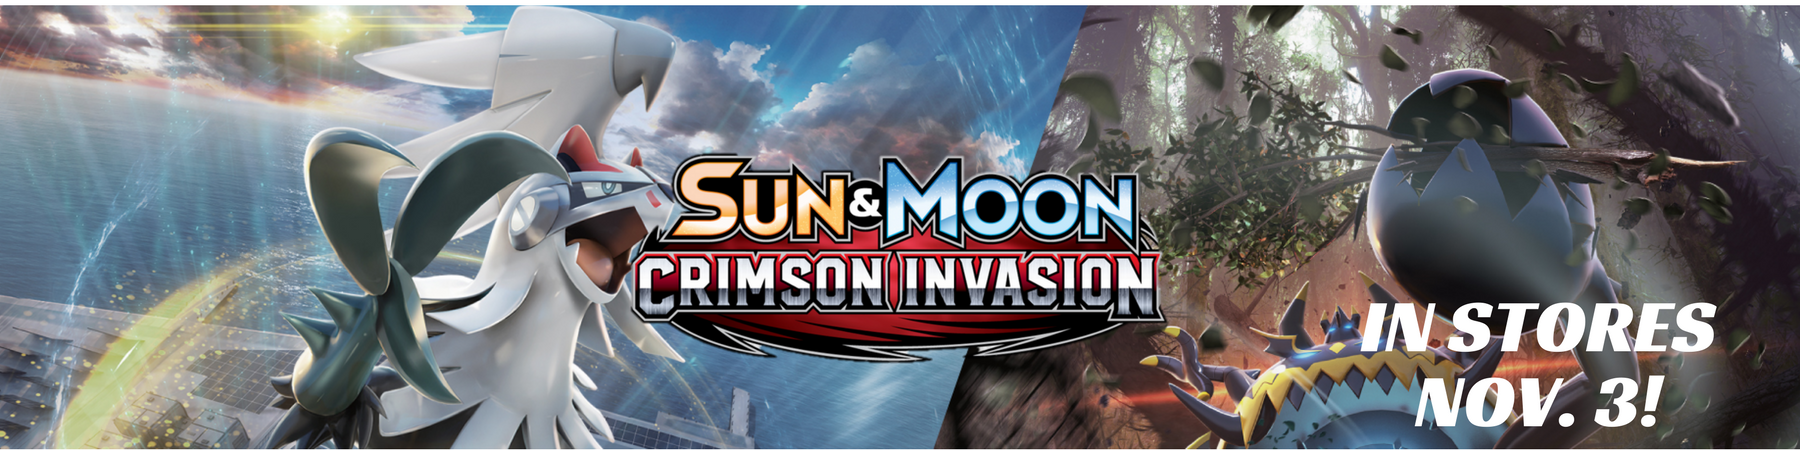 Sun and Moon Crimson Invasion